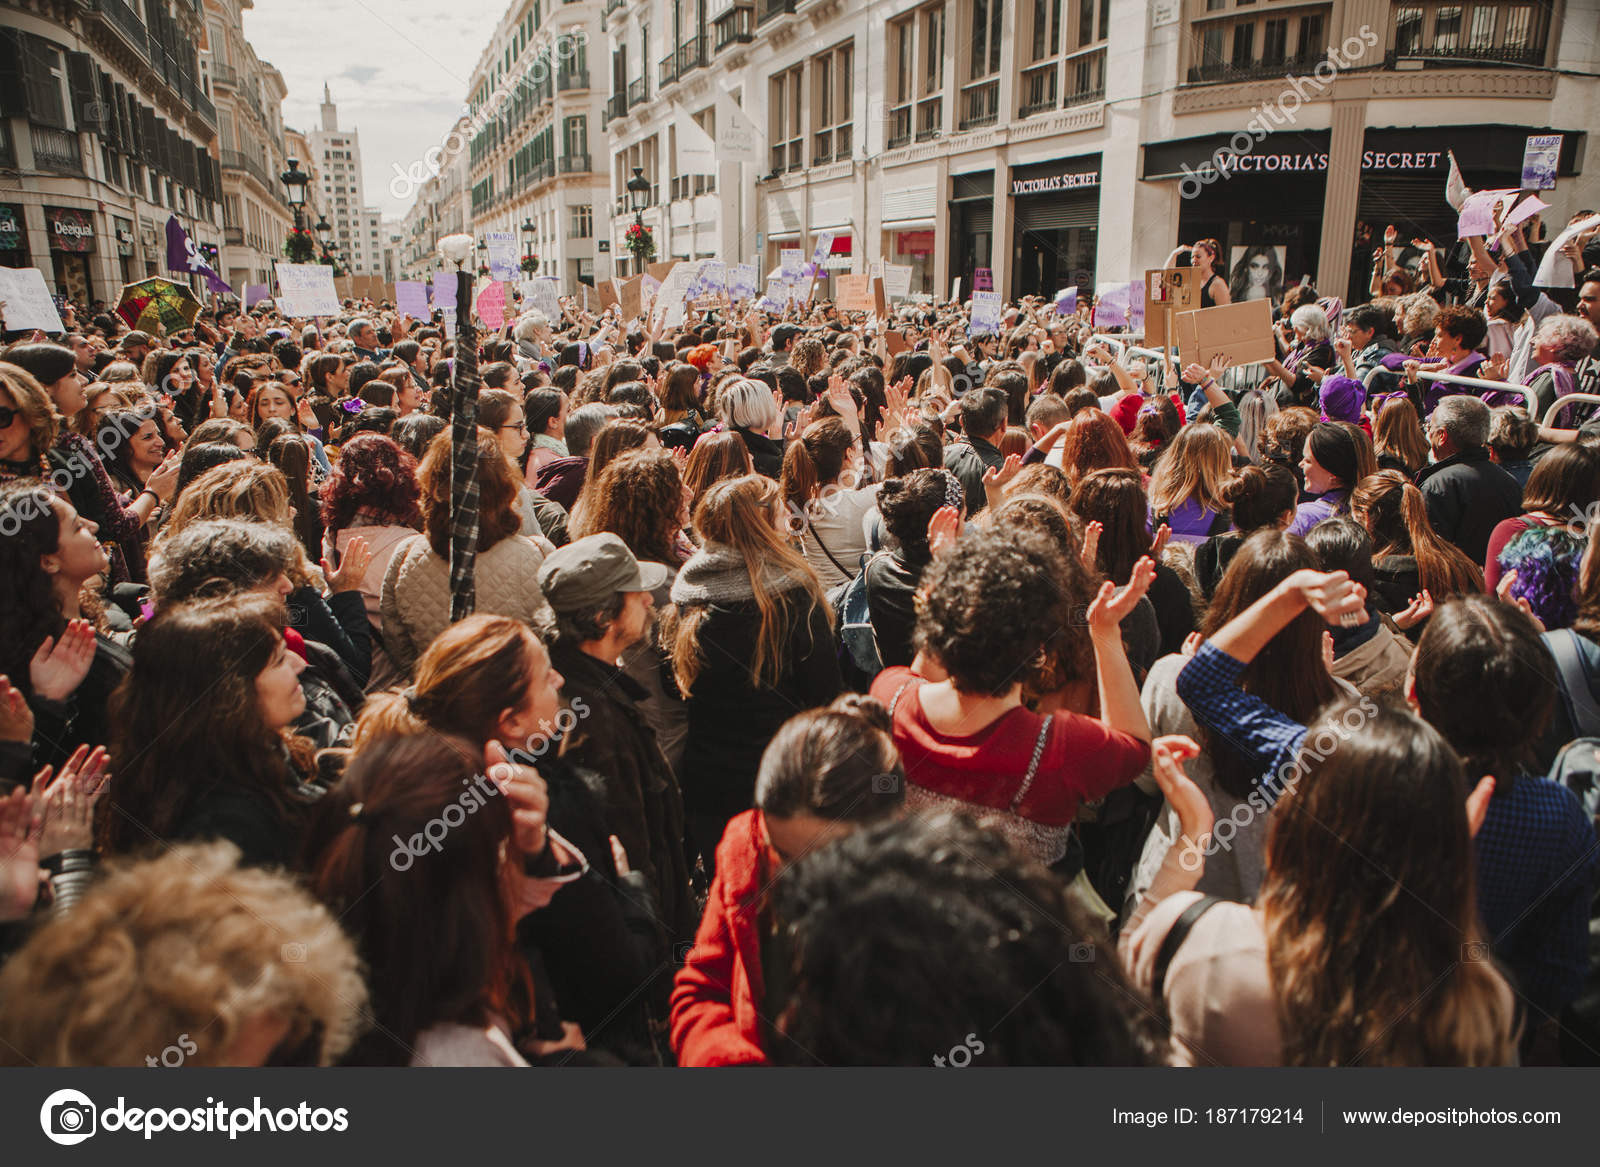 Victoria Secret Espagne Malaga malaga spain march 2018 thousands women take part feminist